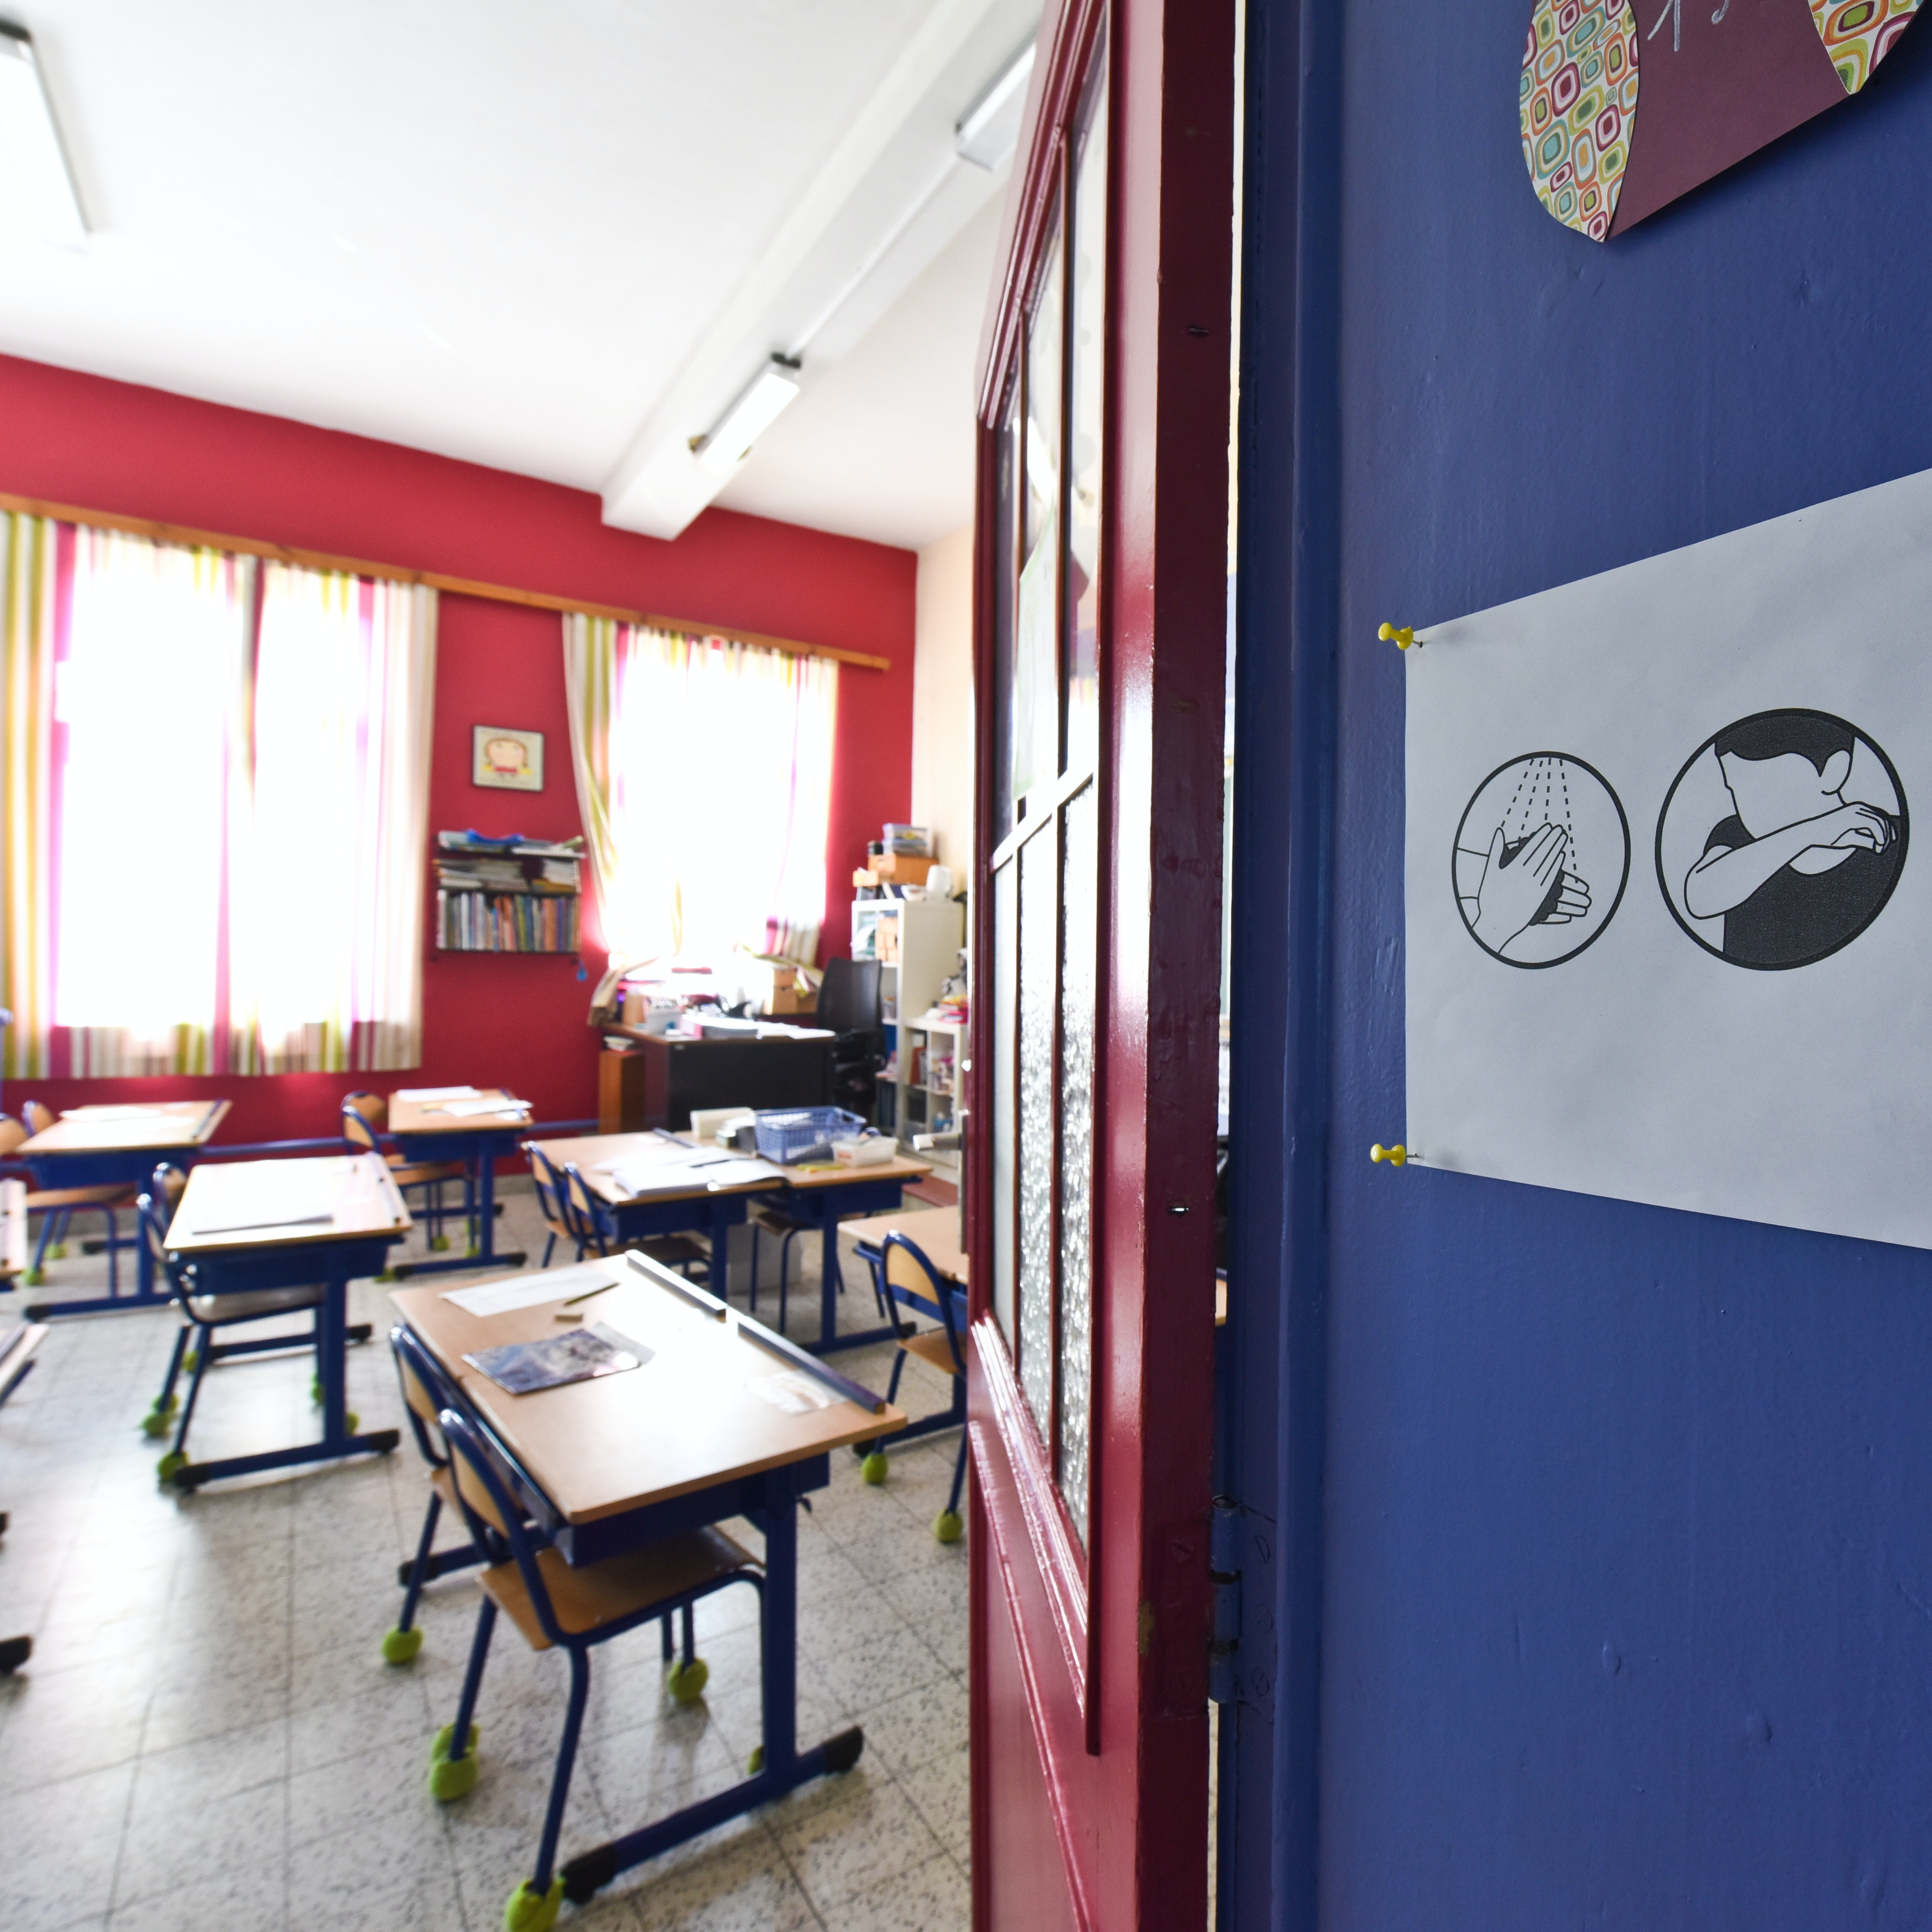 An empty classroom. A sign with instructions on preventing the spread of viruses is posted on the door.